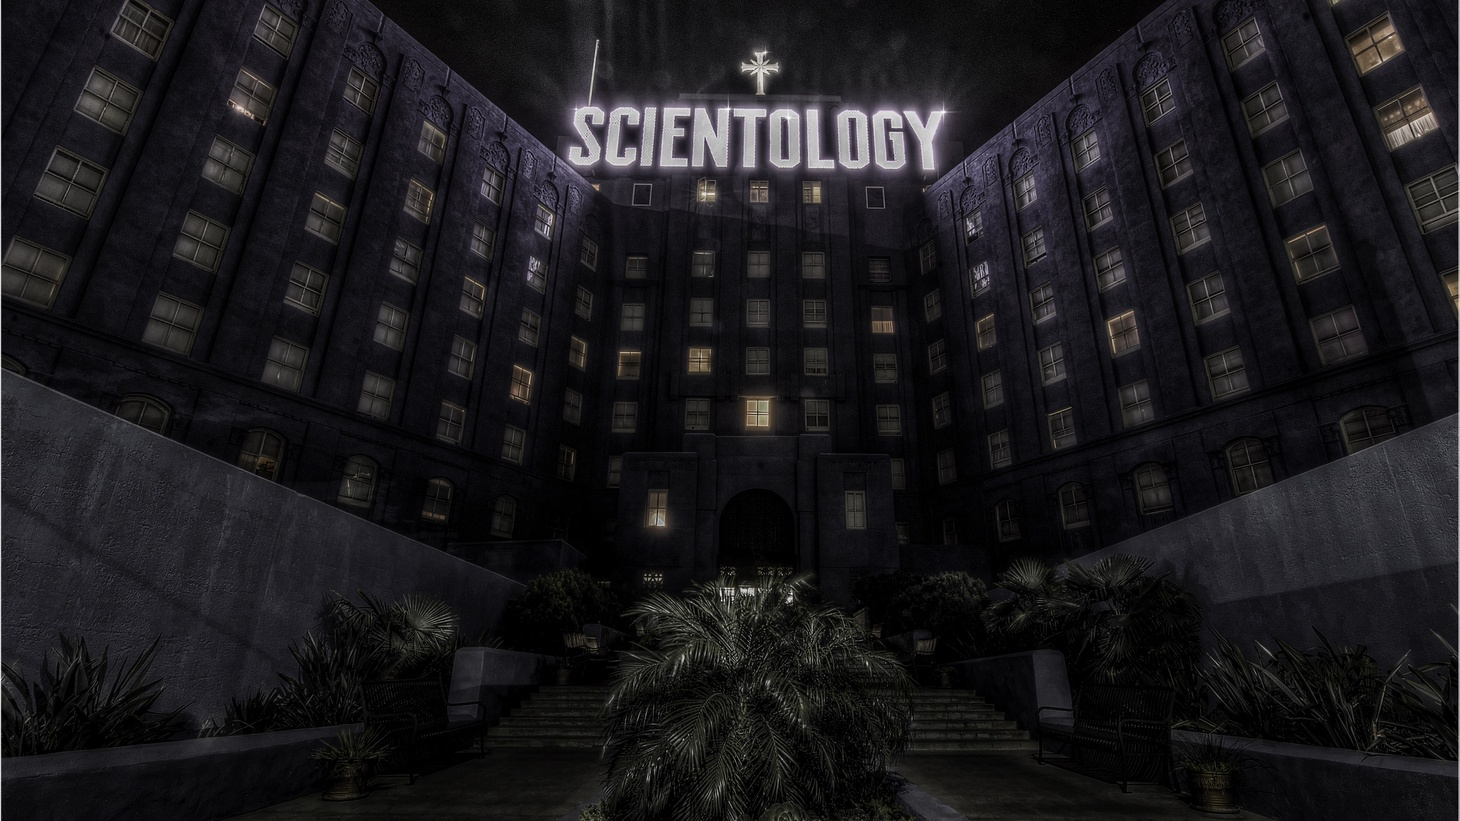 If you have DirecTV, maybe you've seen it: Scientology TV is on the air. The programming is not that different from what the organization publishes on YouTube.